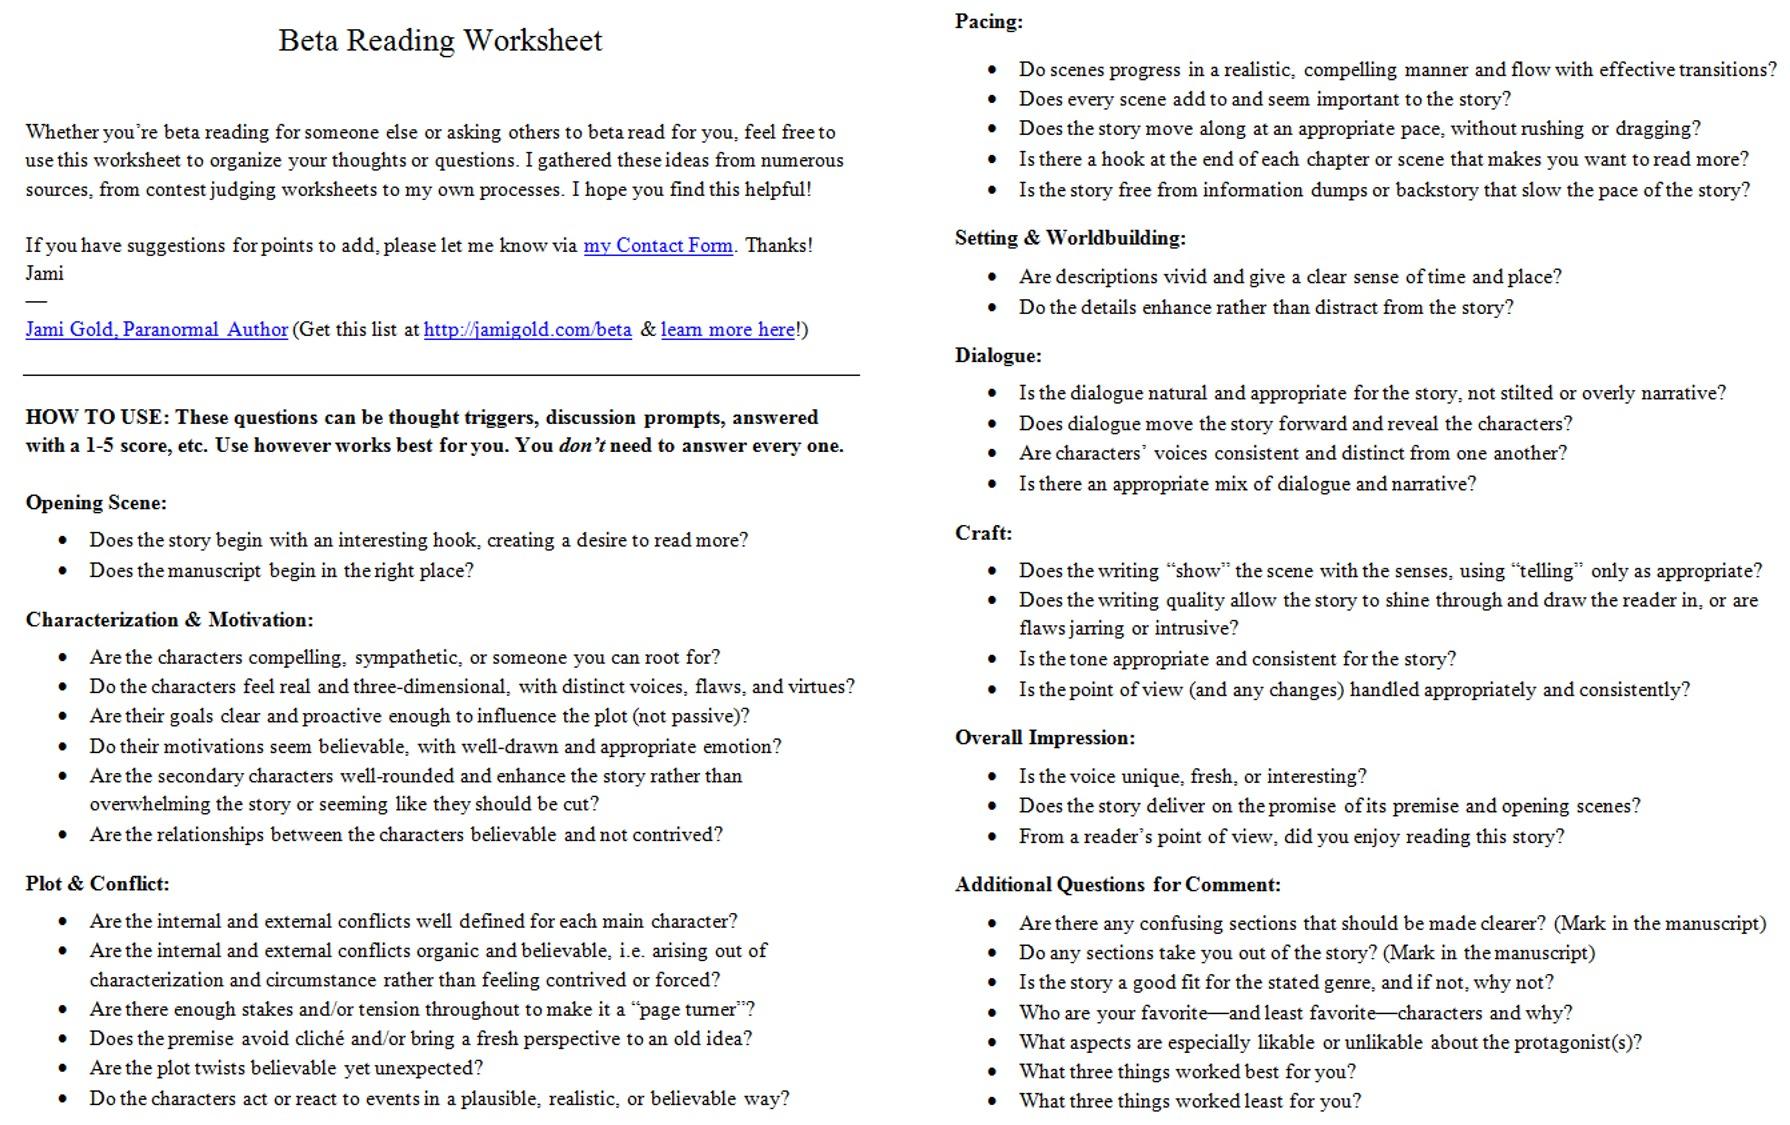 Aldiablosus  Marvelous Worksheets For Writers  Jami Gold Paranormal Author With Likable Screen Shot Of The Twopage Beta Reading Worksheet With Cute Math Worksheets For Grade  Algebra Also Body Parts Cut And Paste Worksheet In Addition Blank Animal Cell Worksheet And Printable Worksheets Ks As Well As Past Tense Practice Worksheets Additionally Worksheet On Simplifying Expressions From Jamigoldcom With Aldiablosus  Likable Worksheets For Writers  Jami Gold Paranormal Author With Cute Screen Shot Of The Twopage Beta Reading Worksheet And Marvelous Math Worksheets For Grade  Algebra Also Body Parts Cut And Paste Worksheet In Addition Blank Animal Cell Worksheet From Jamigoldcom